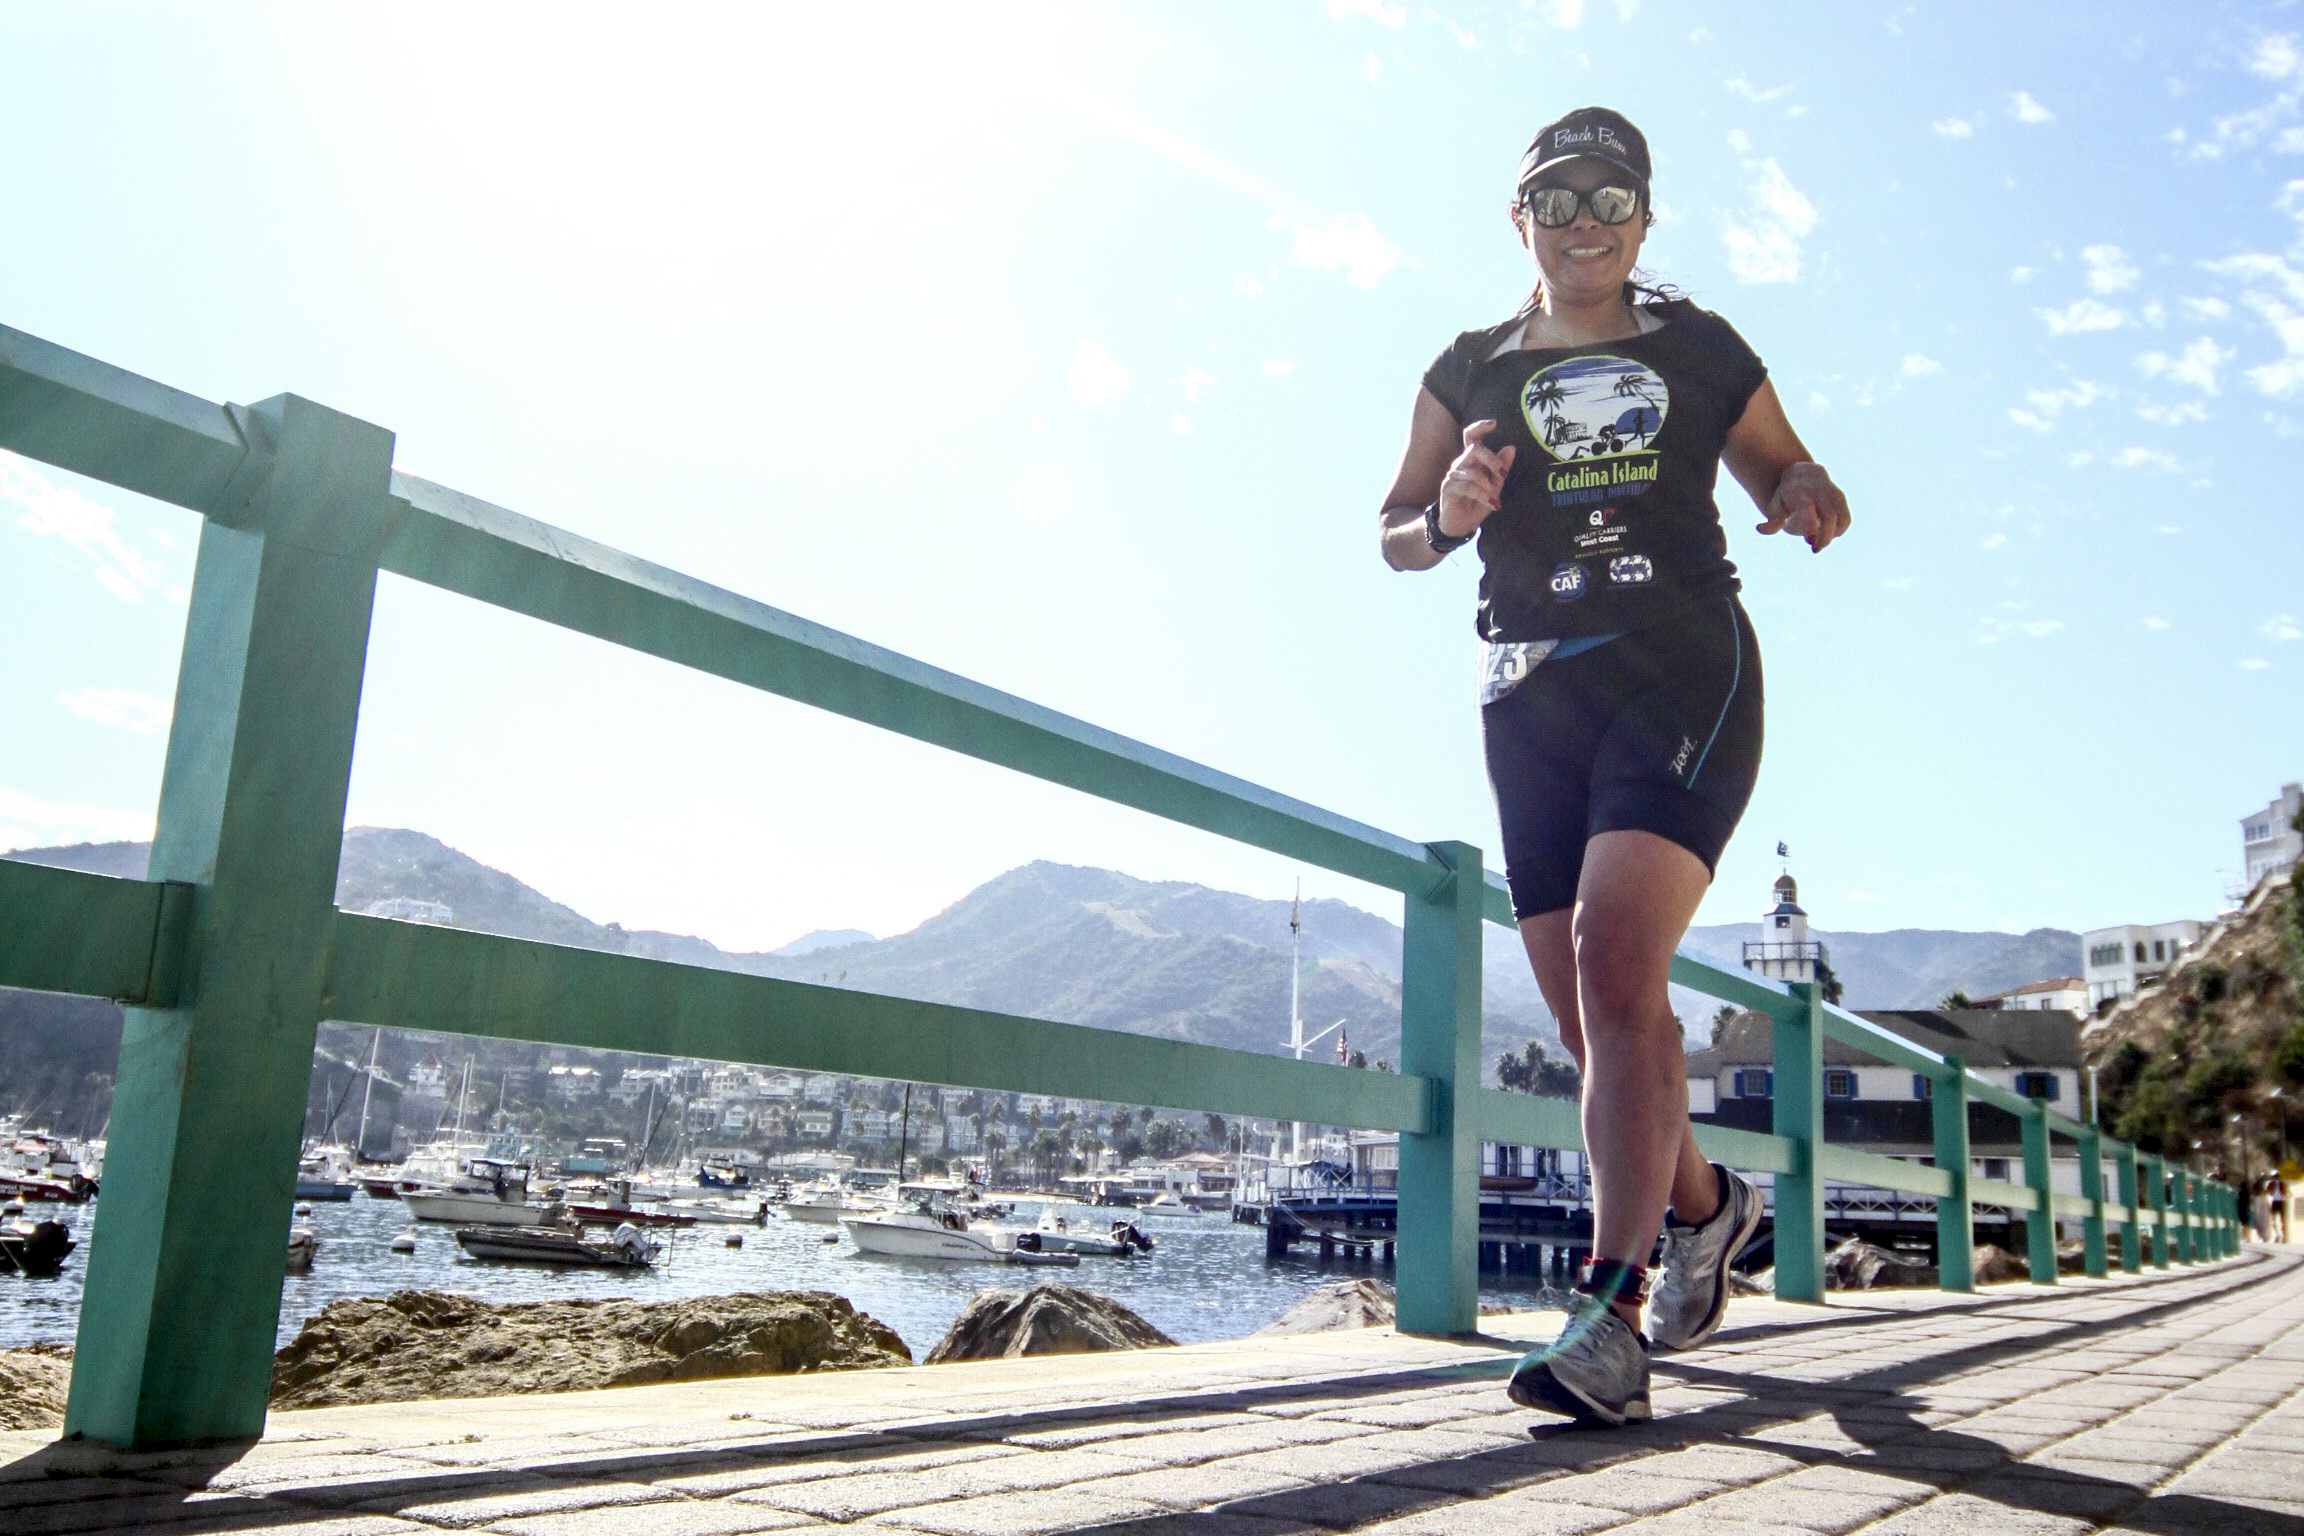 Locals show their competitive spirit - The Catalina Inslader